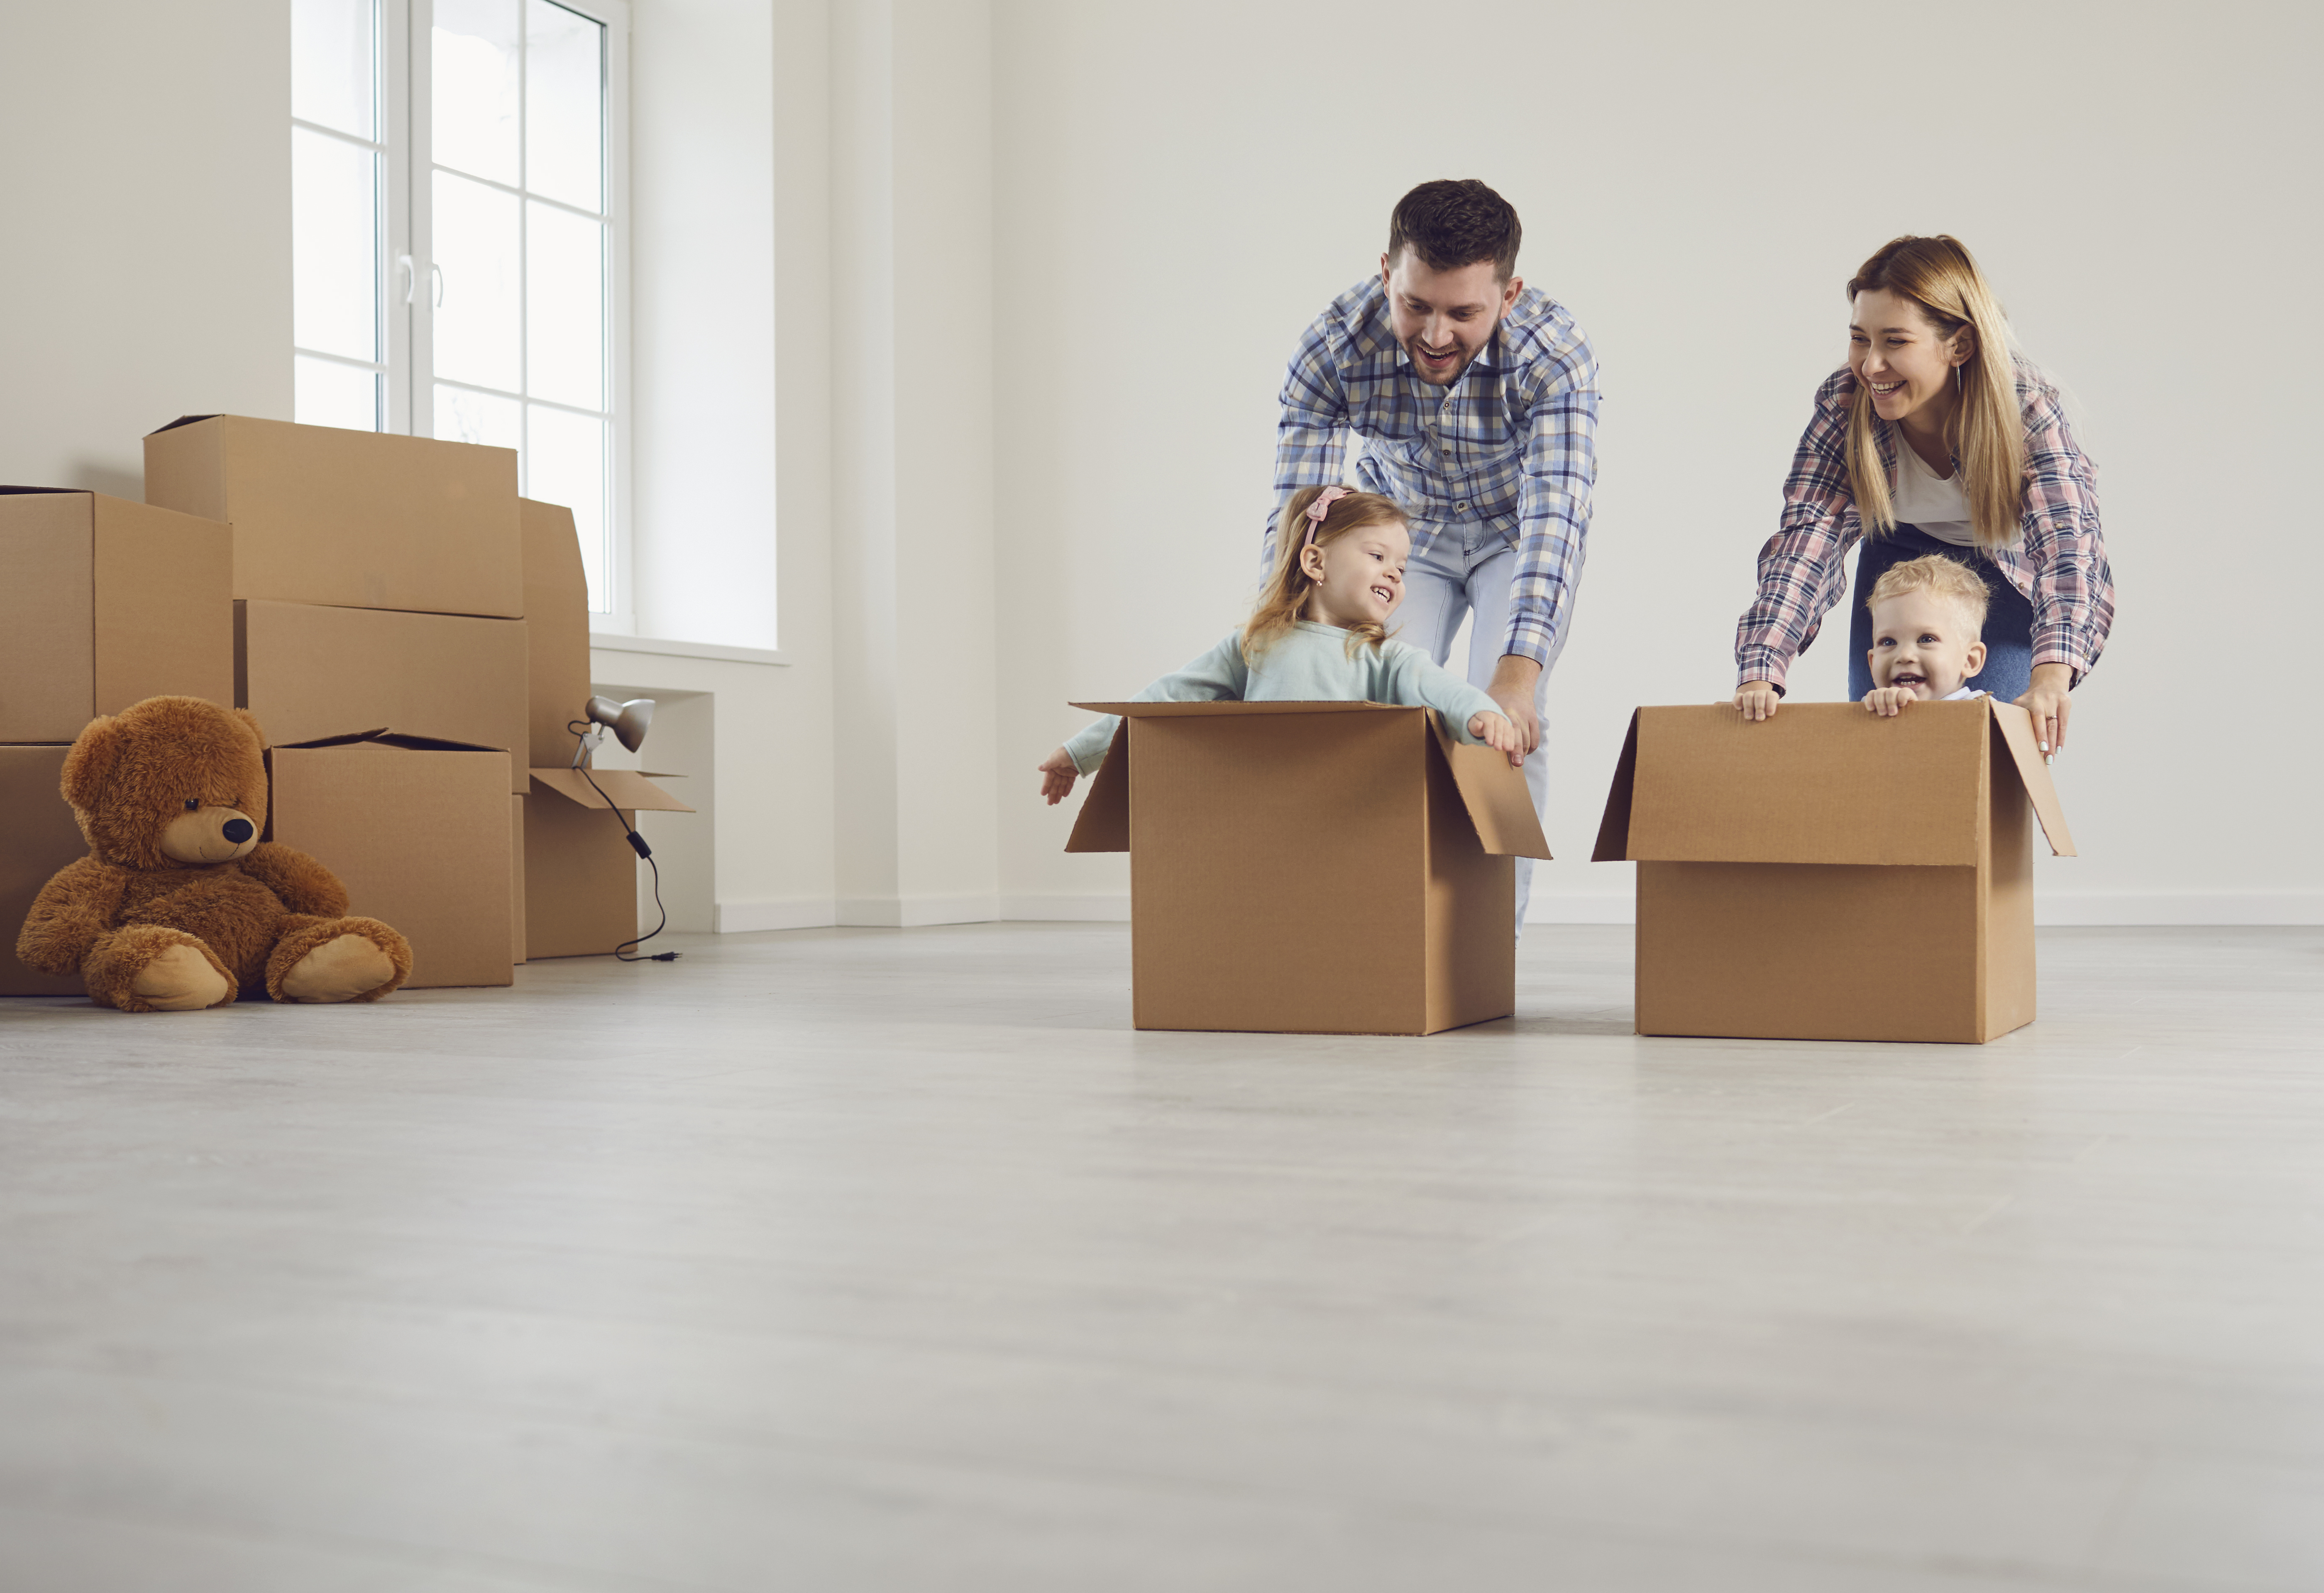 Happy family on life insurance have fun playing in a new house in the room.